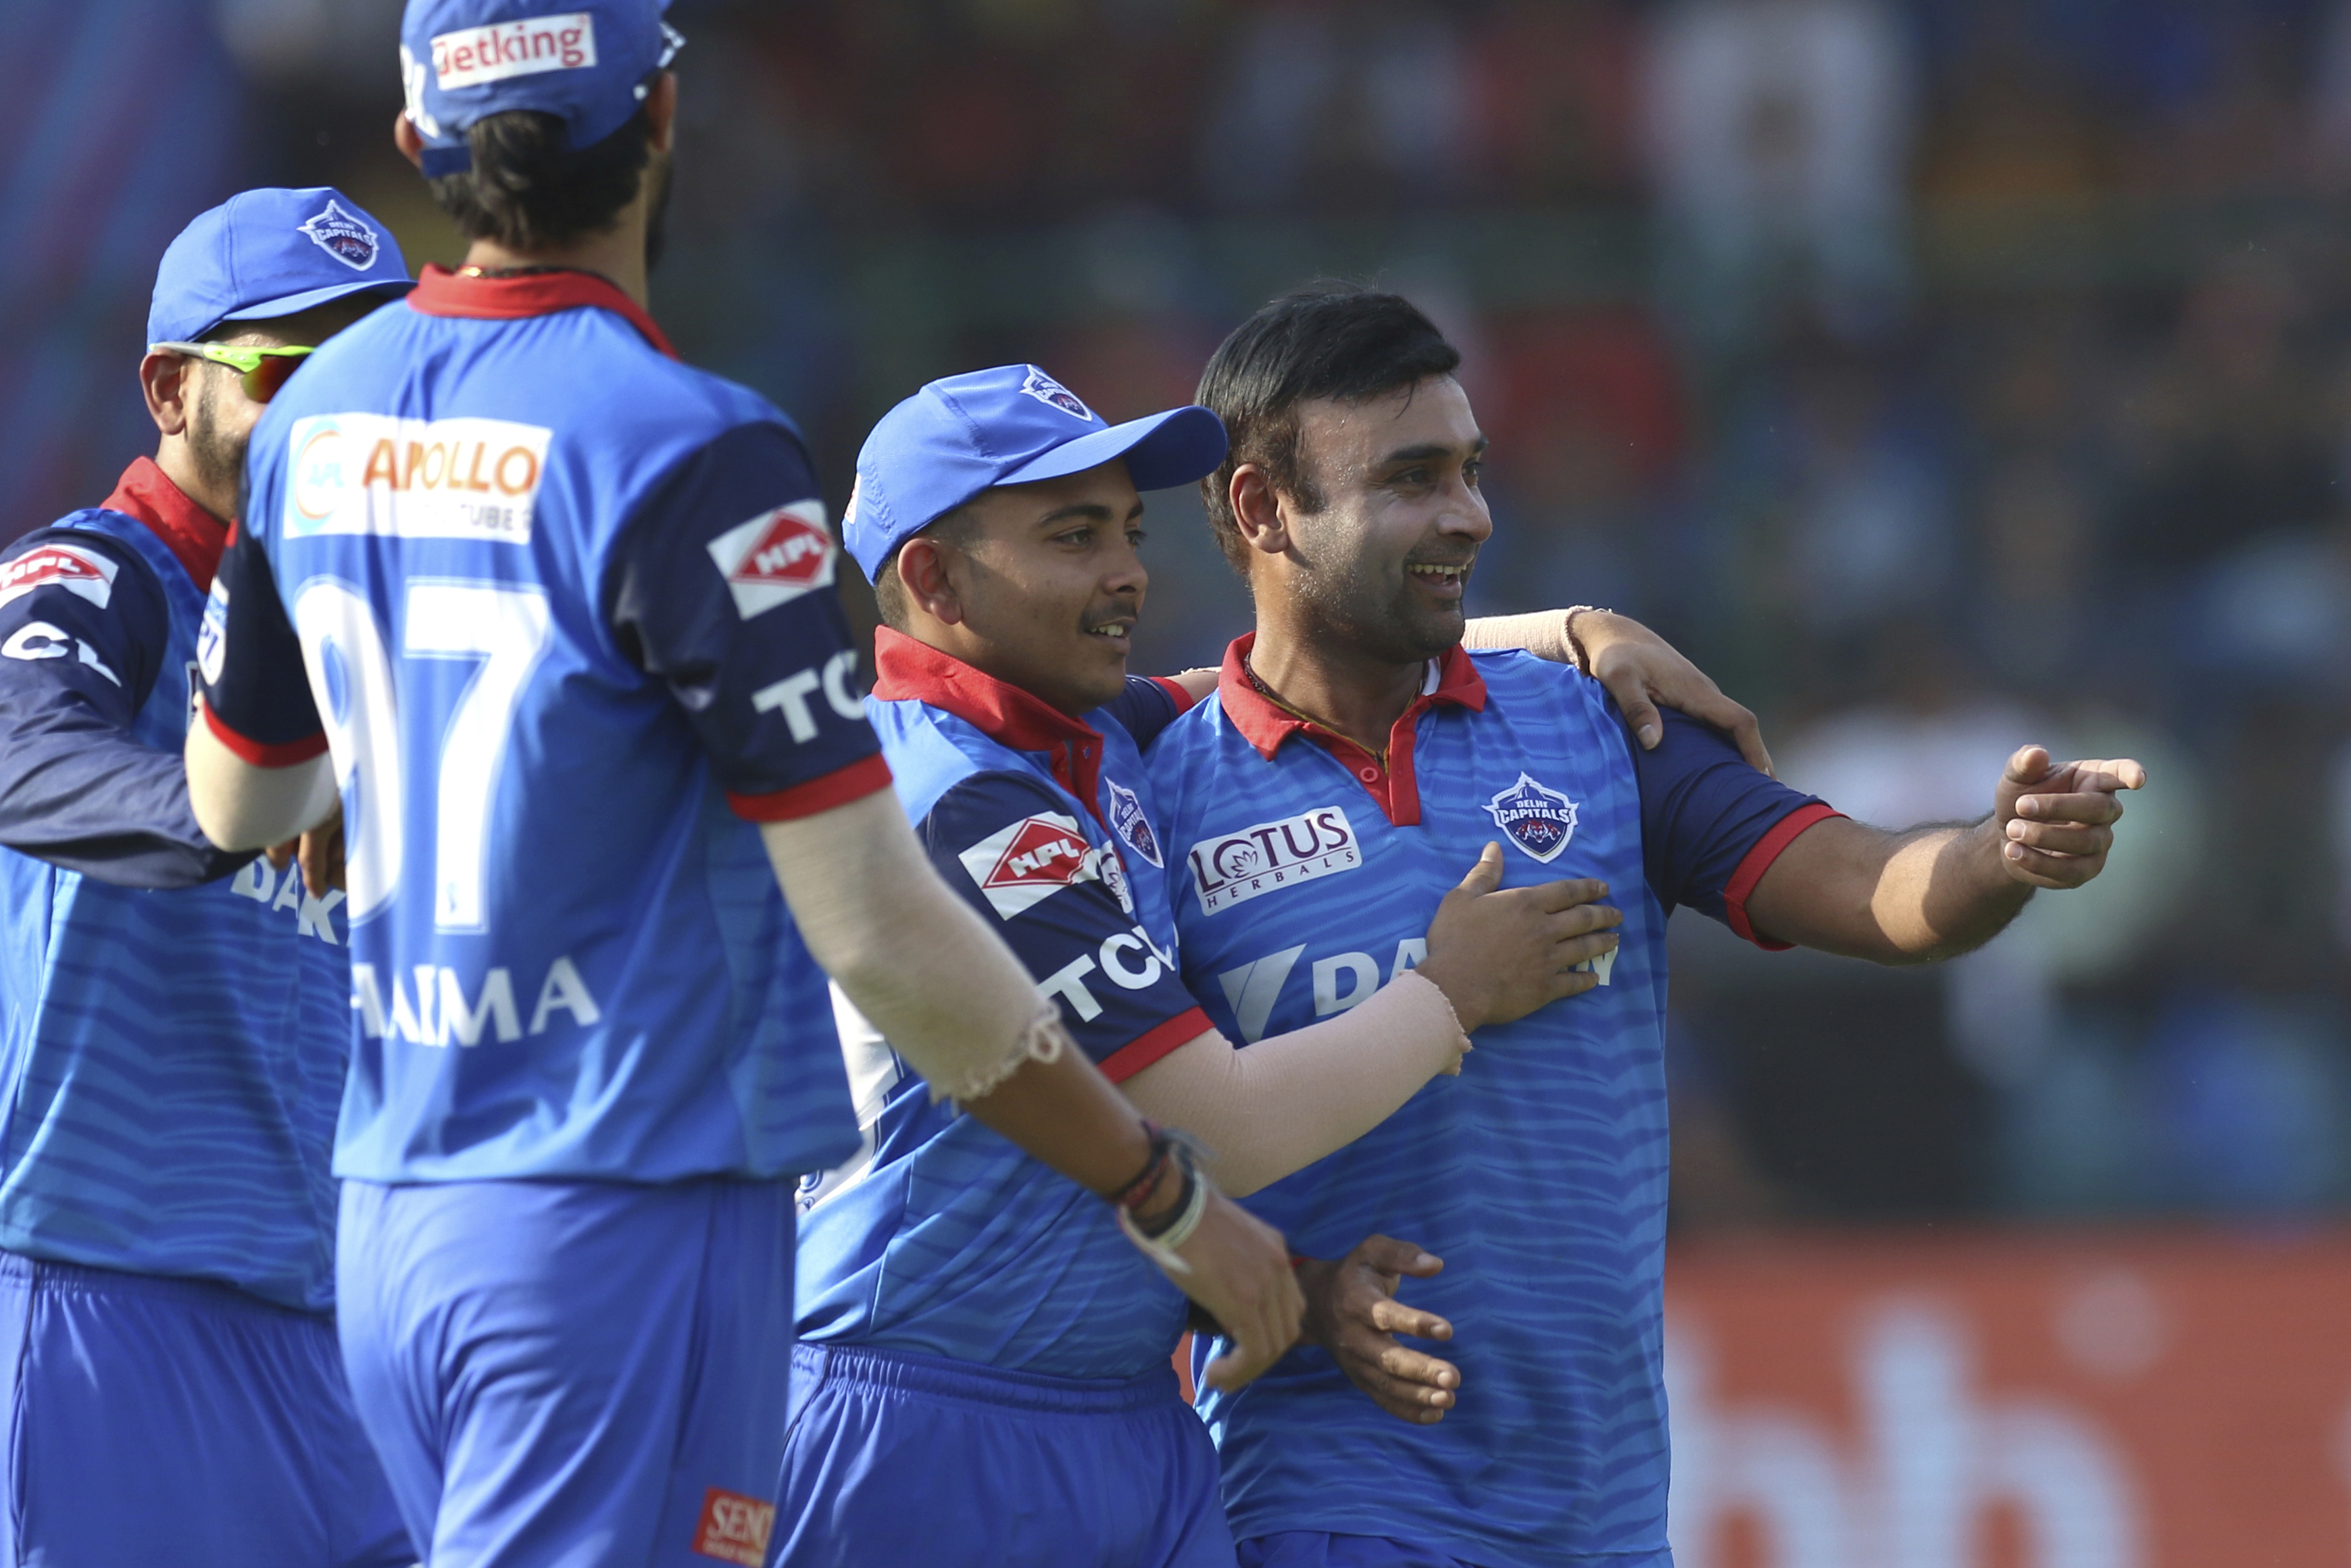 Delhi Capitals cruised to a win against Rajasthan Royals in their last game